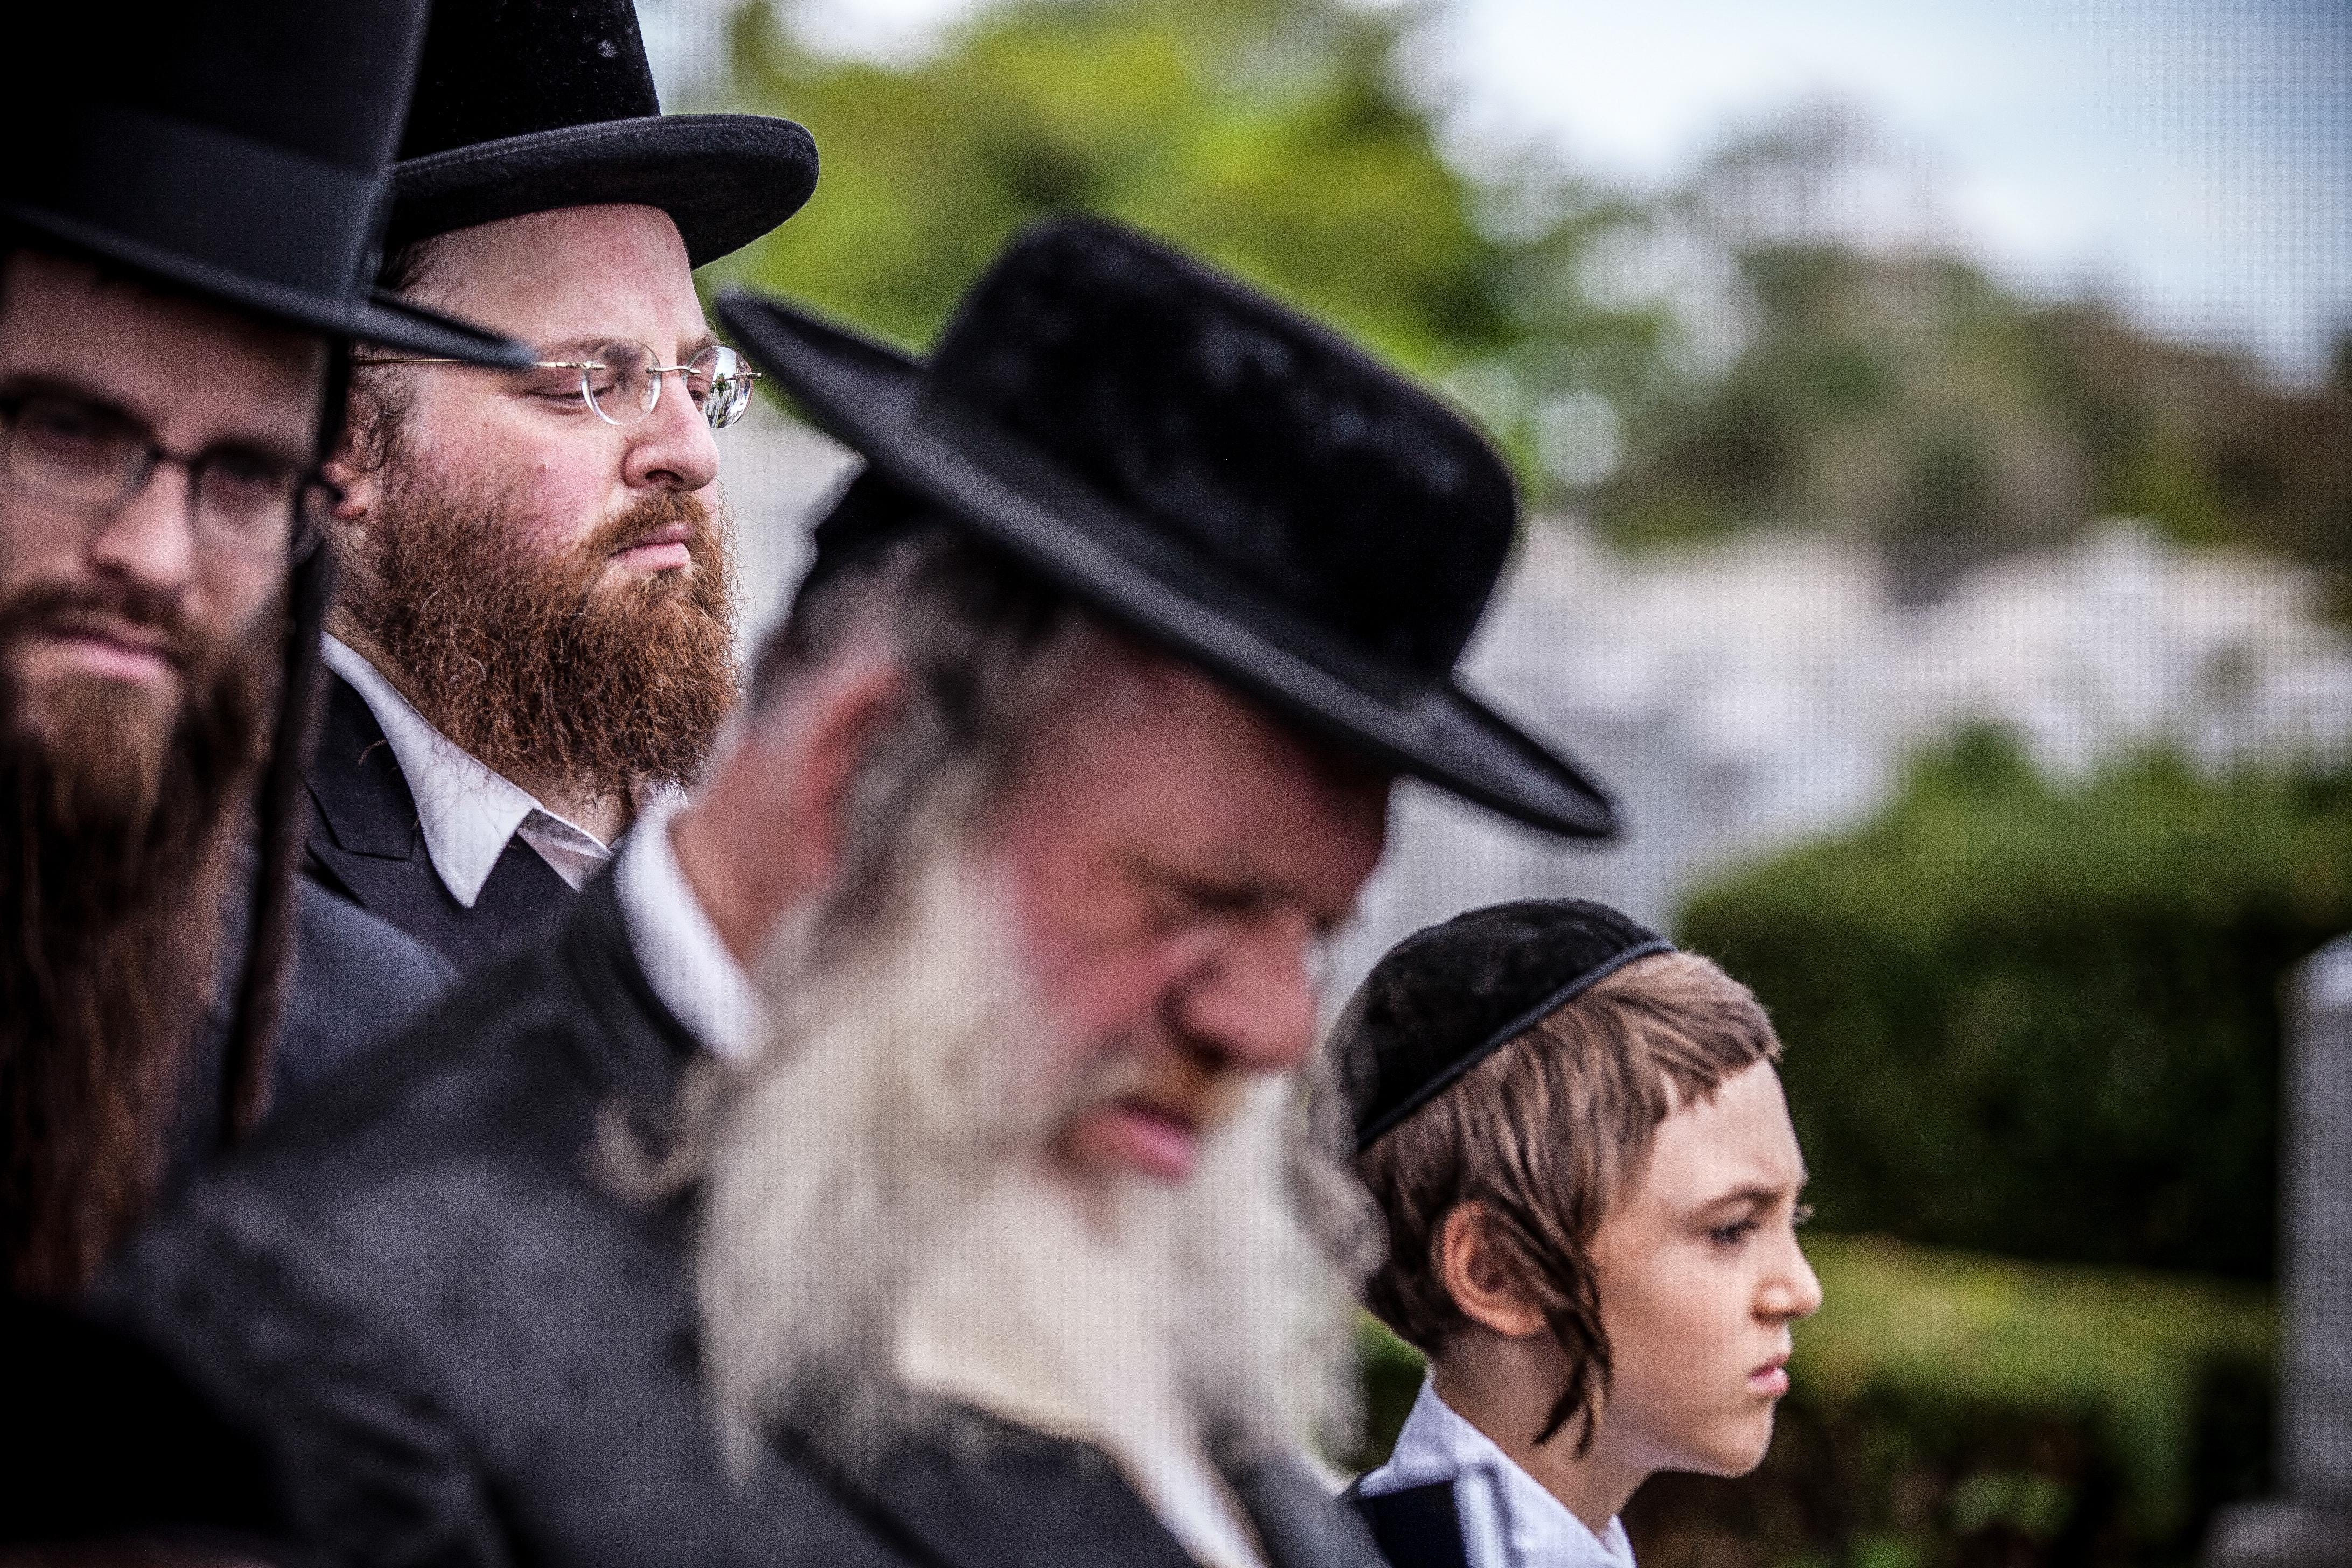 Review: Filmmaker gives 'Menashe' authentic feel